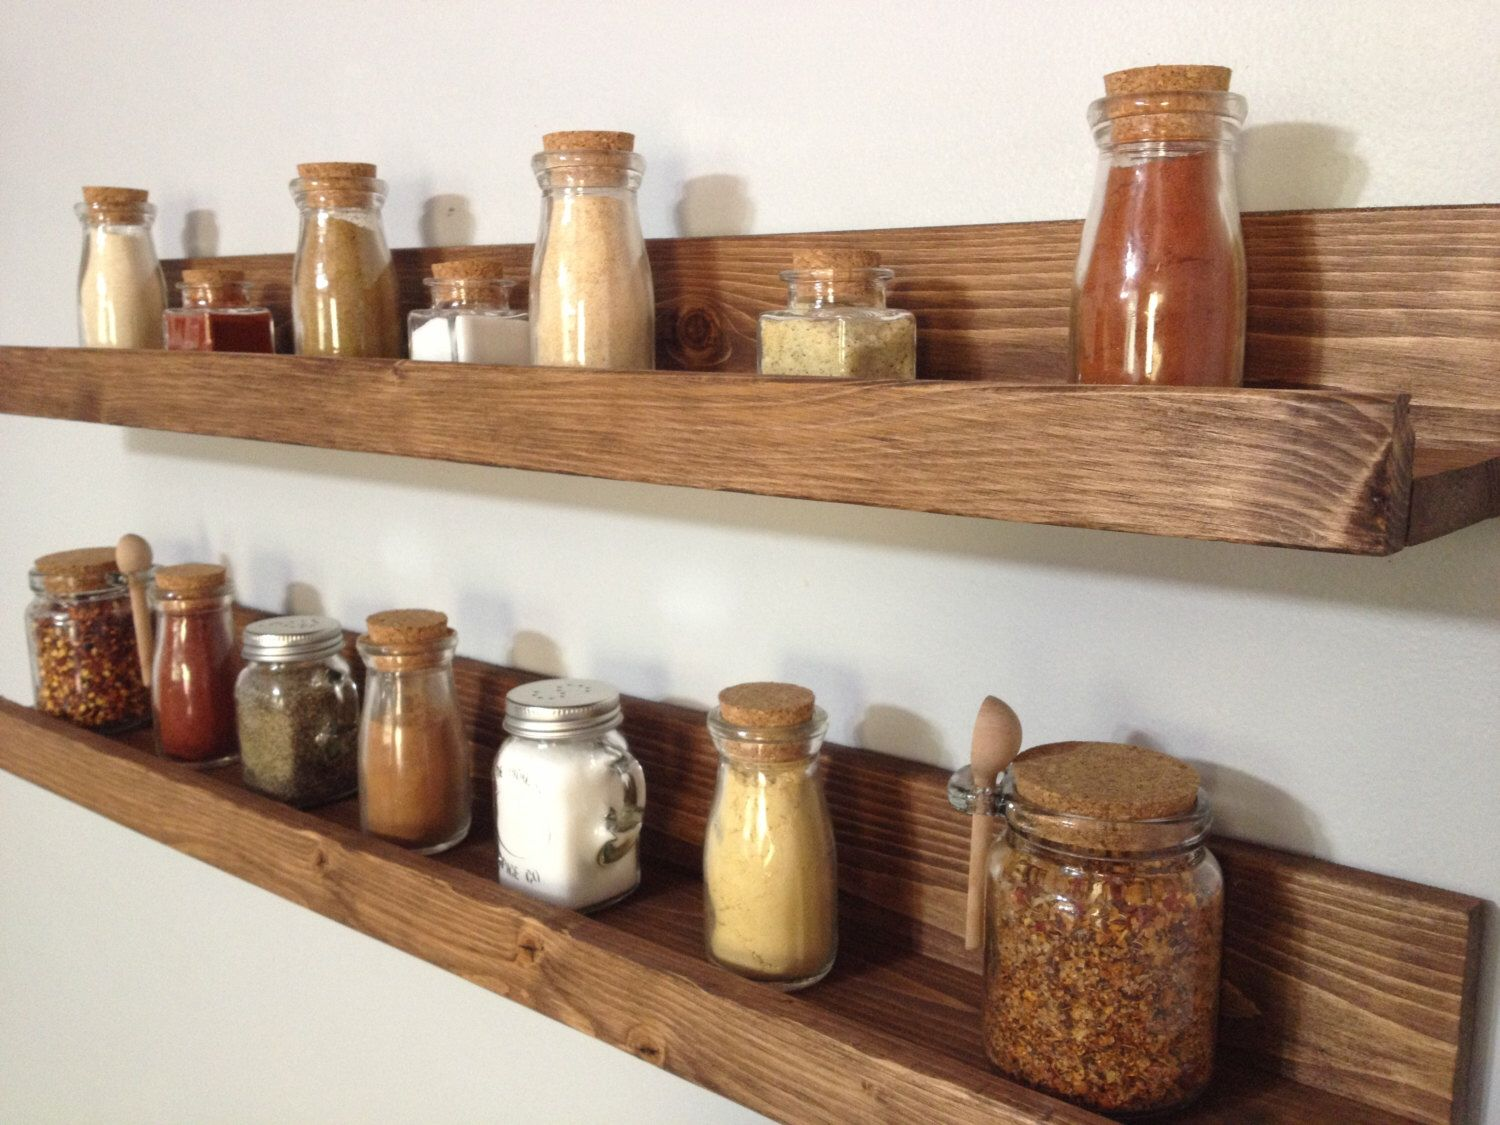 rustic wooden spice rack ledge shelf, ledge shelves, wooden rack